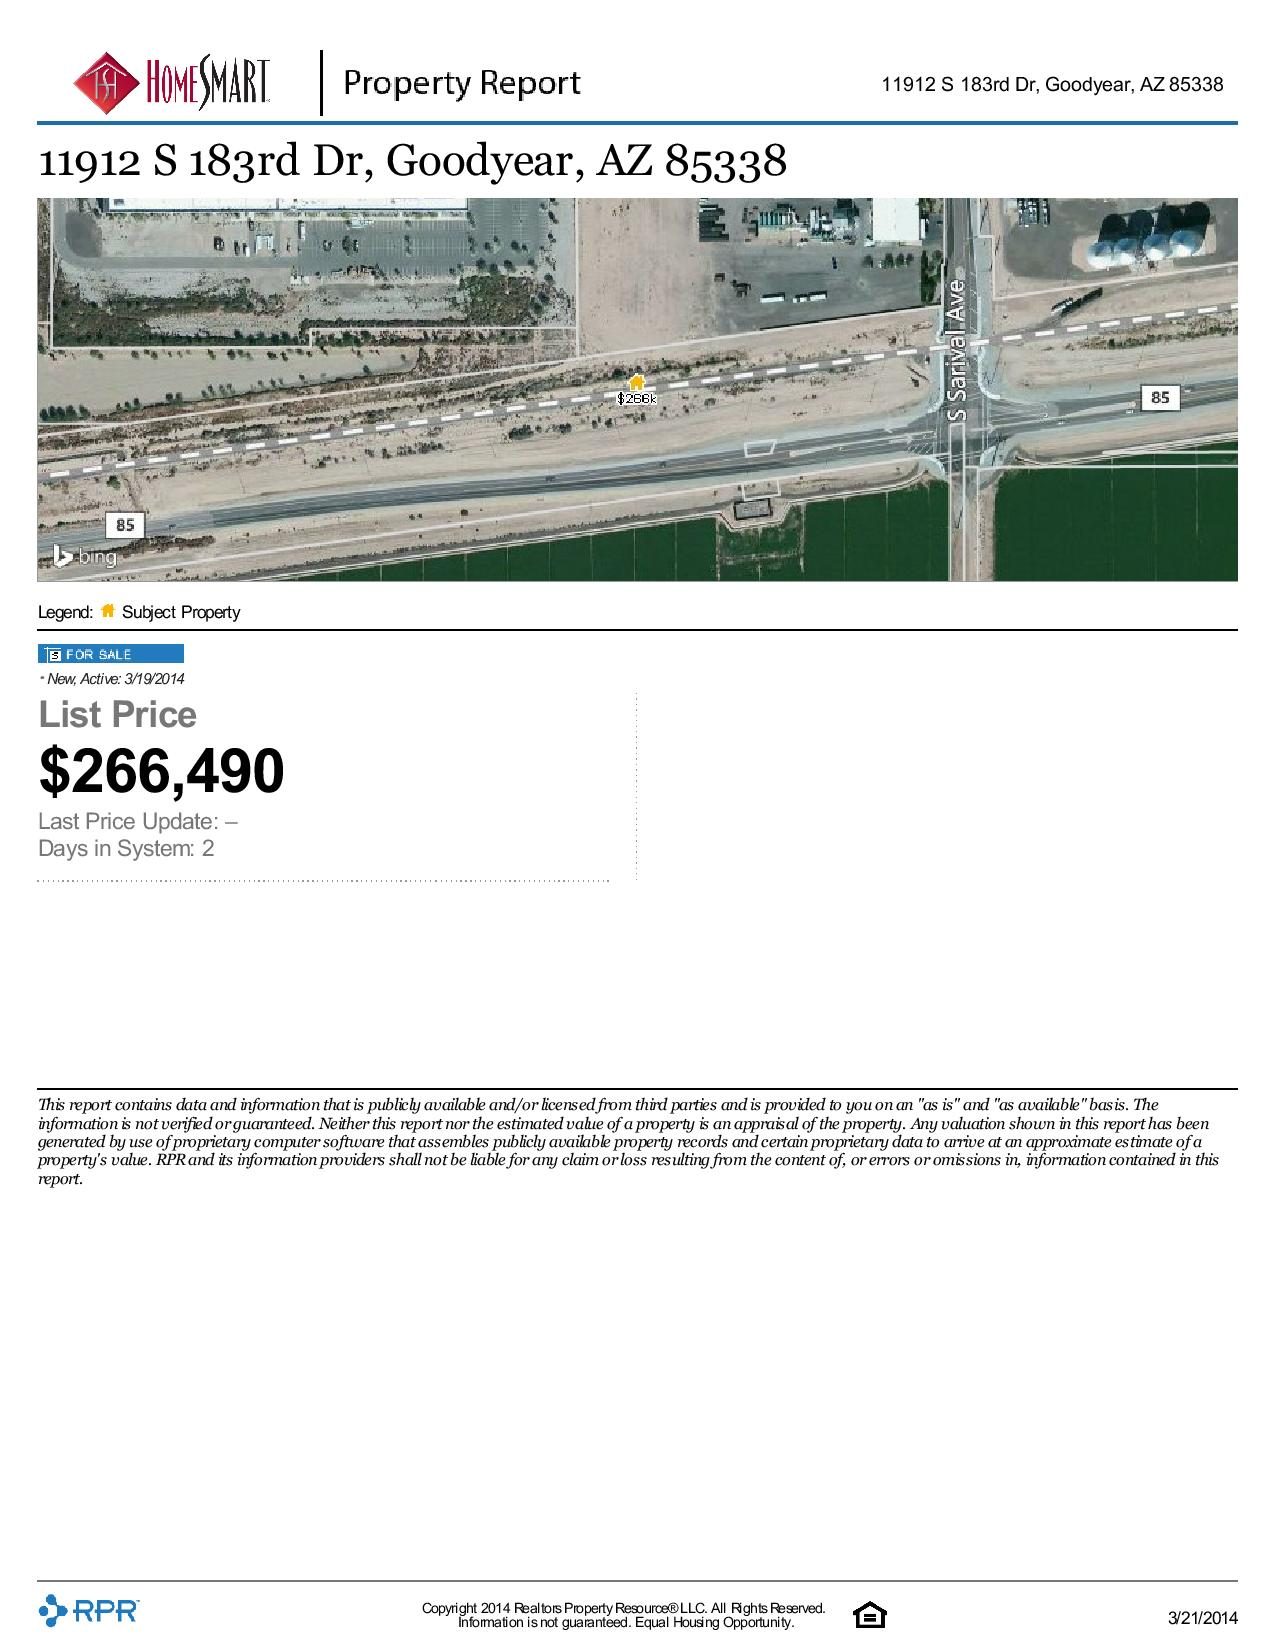 11912-S-183rd-Dr-Goodyear-AZ-85338-page-002